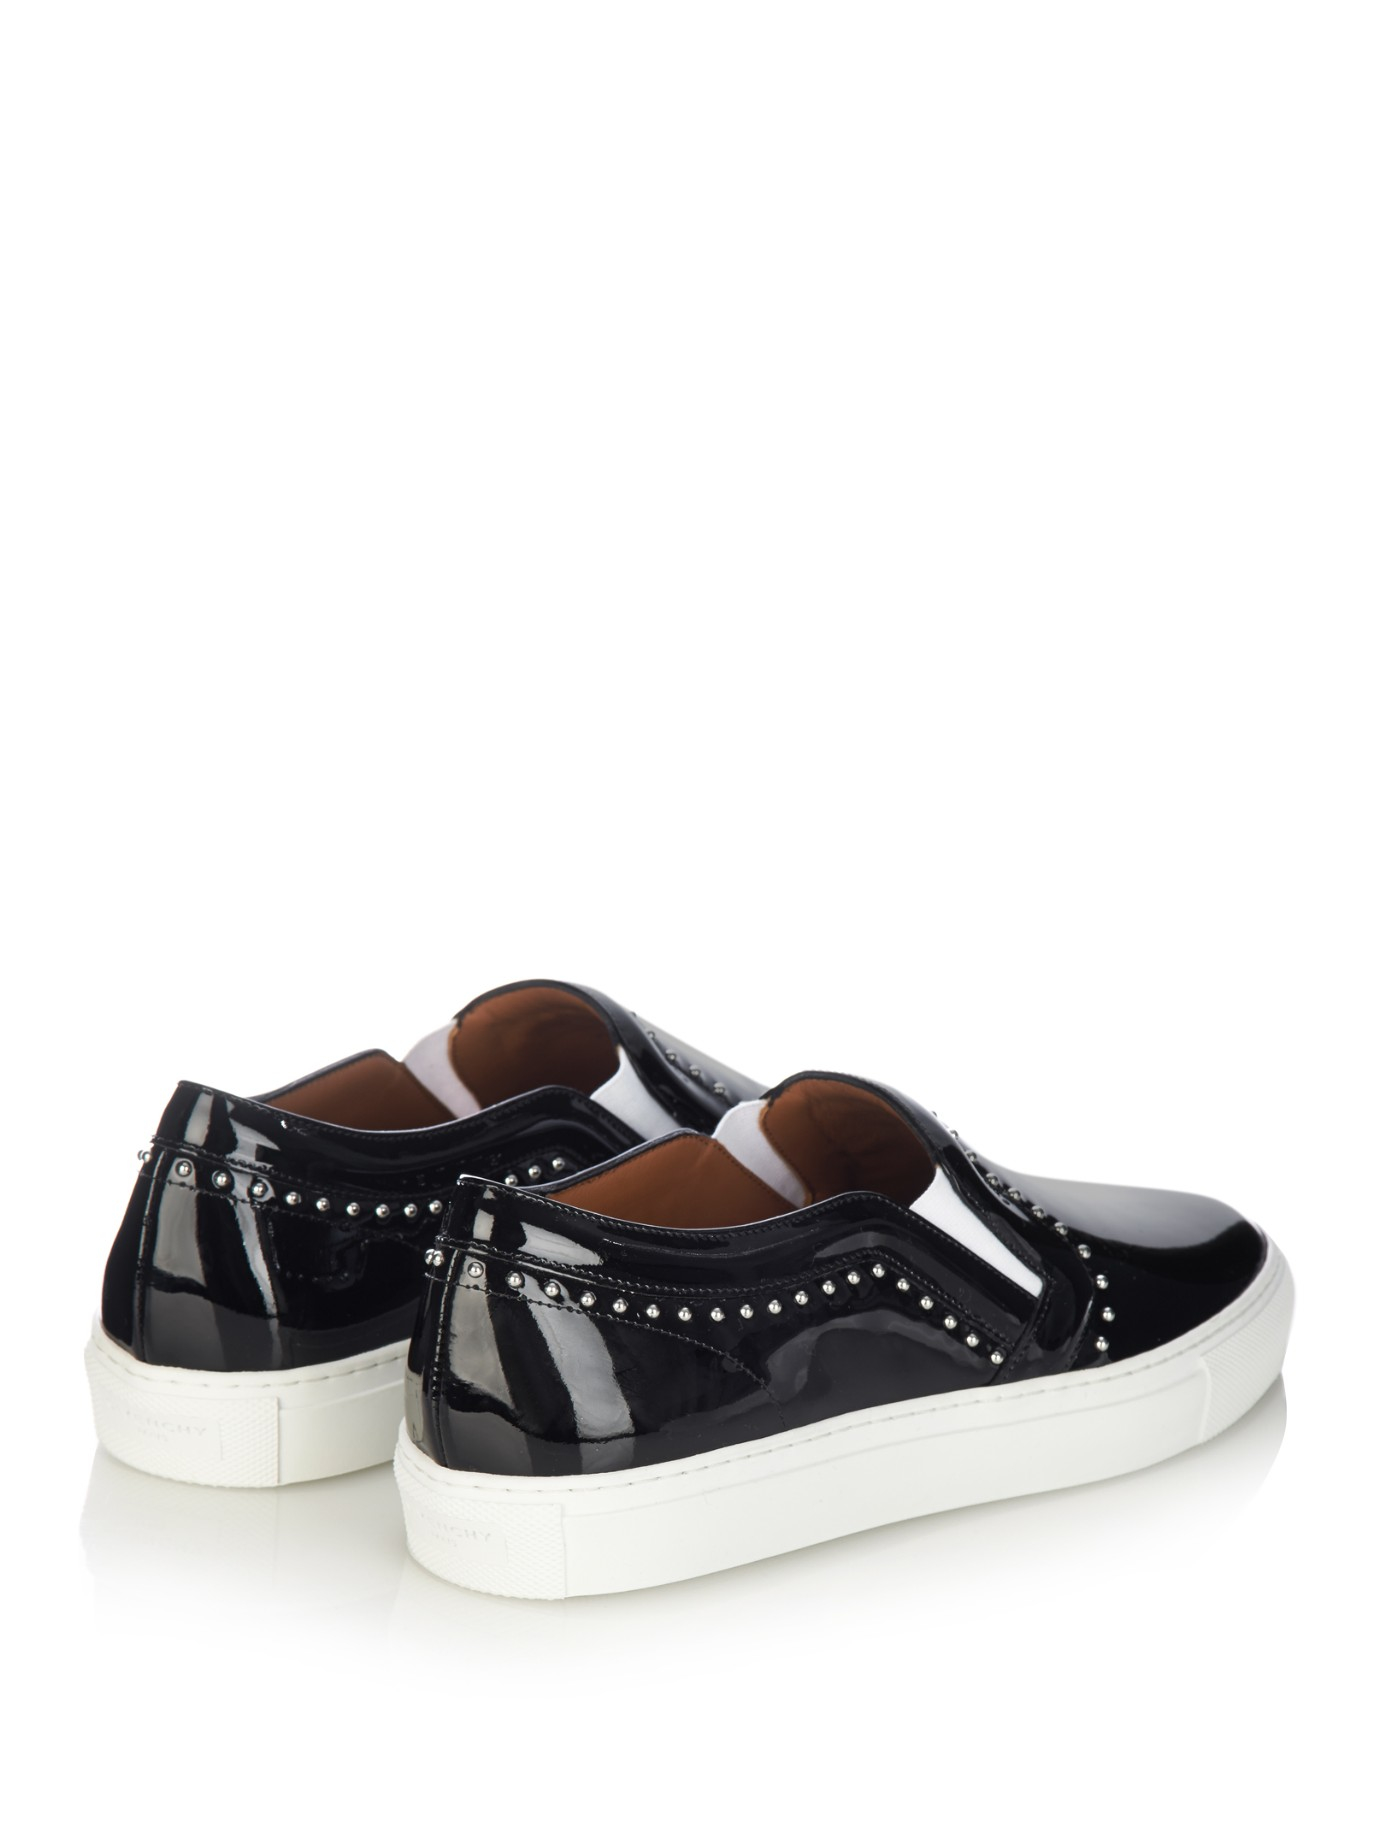 Givenchy Studded Patent Leather Sneakers